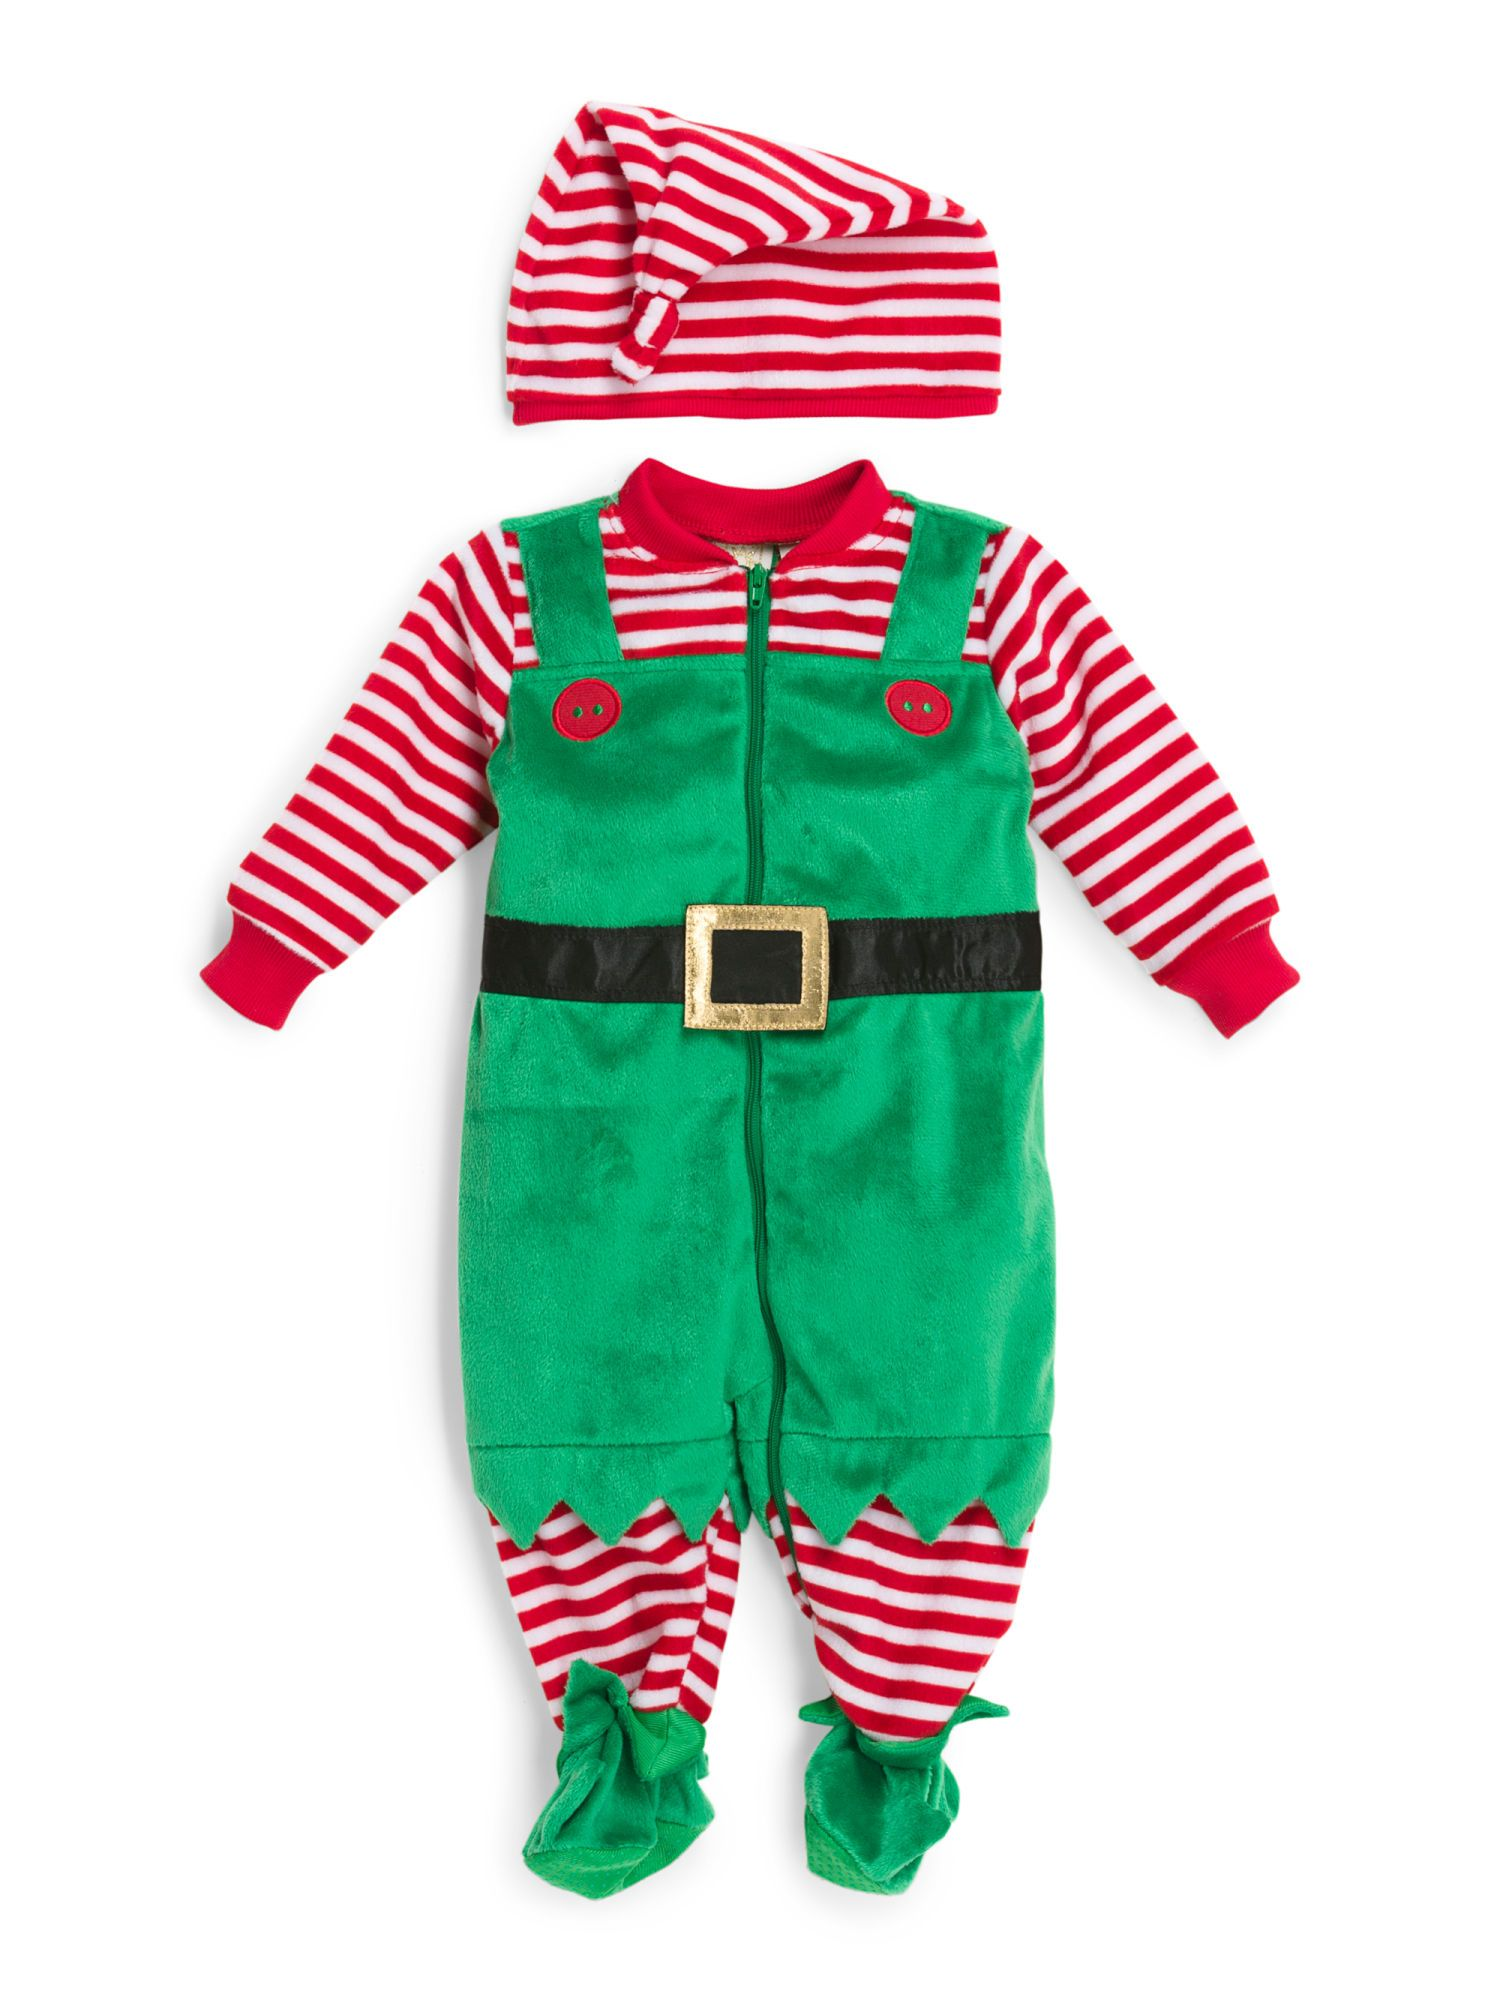 Find elf costumes for the whole family for this Christmas season. We have adult and child elf costumes as well as sexy elf costumes for women. Elf Baby Bunting Costume. $ $ Made By Us Exclusive. Adult Christmas Elf Shoes. $ Toddler Happy Christmas Elf Costume. $ Made By Us Exclusive. Munchkin Costume Shoes. $